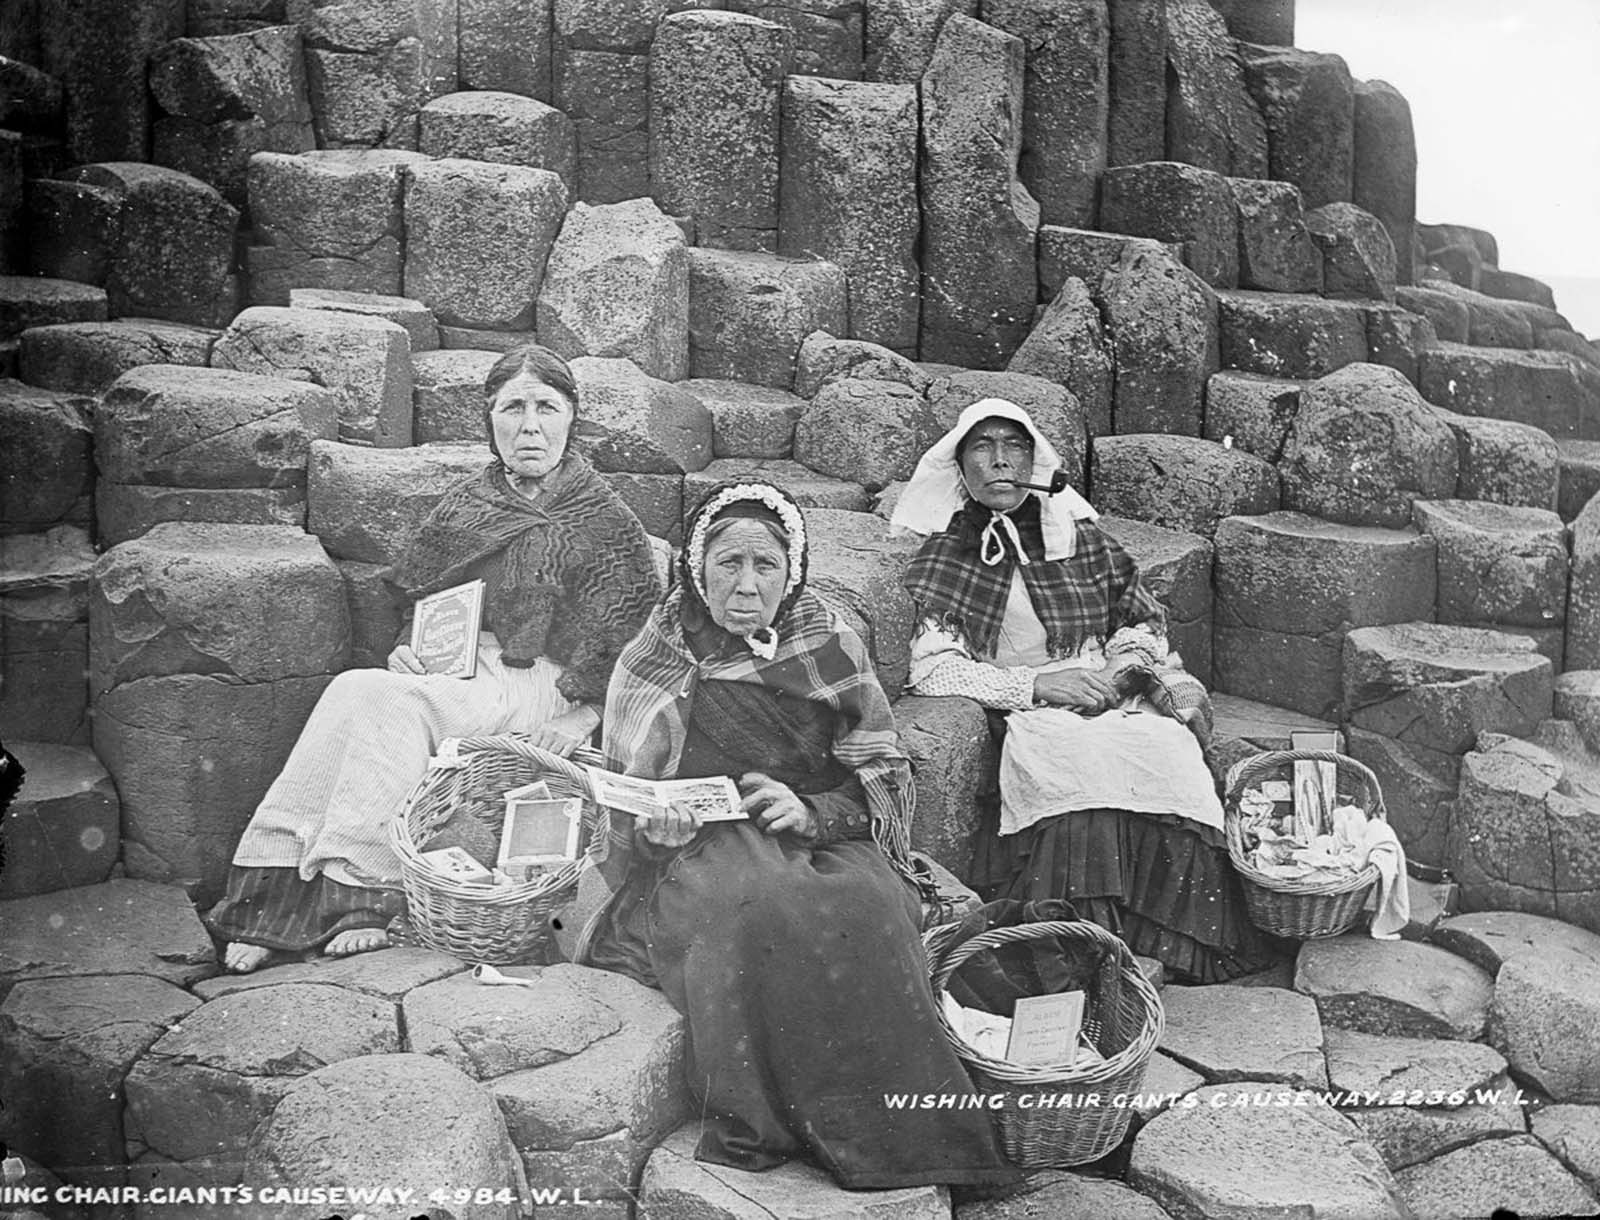 Women sell tourist trinkets and books on Fionn Mac Cumhaill's Wishing Chair at the Giant's Causeway, County Antrim. 1900.